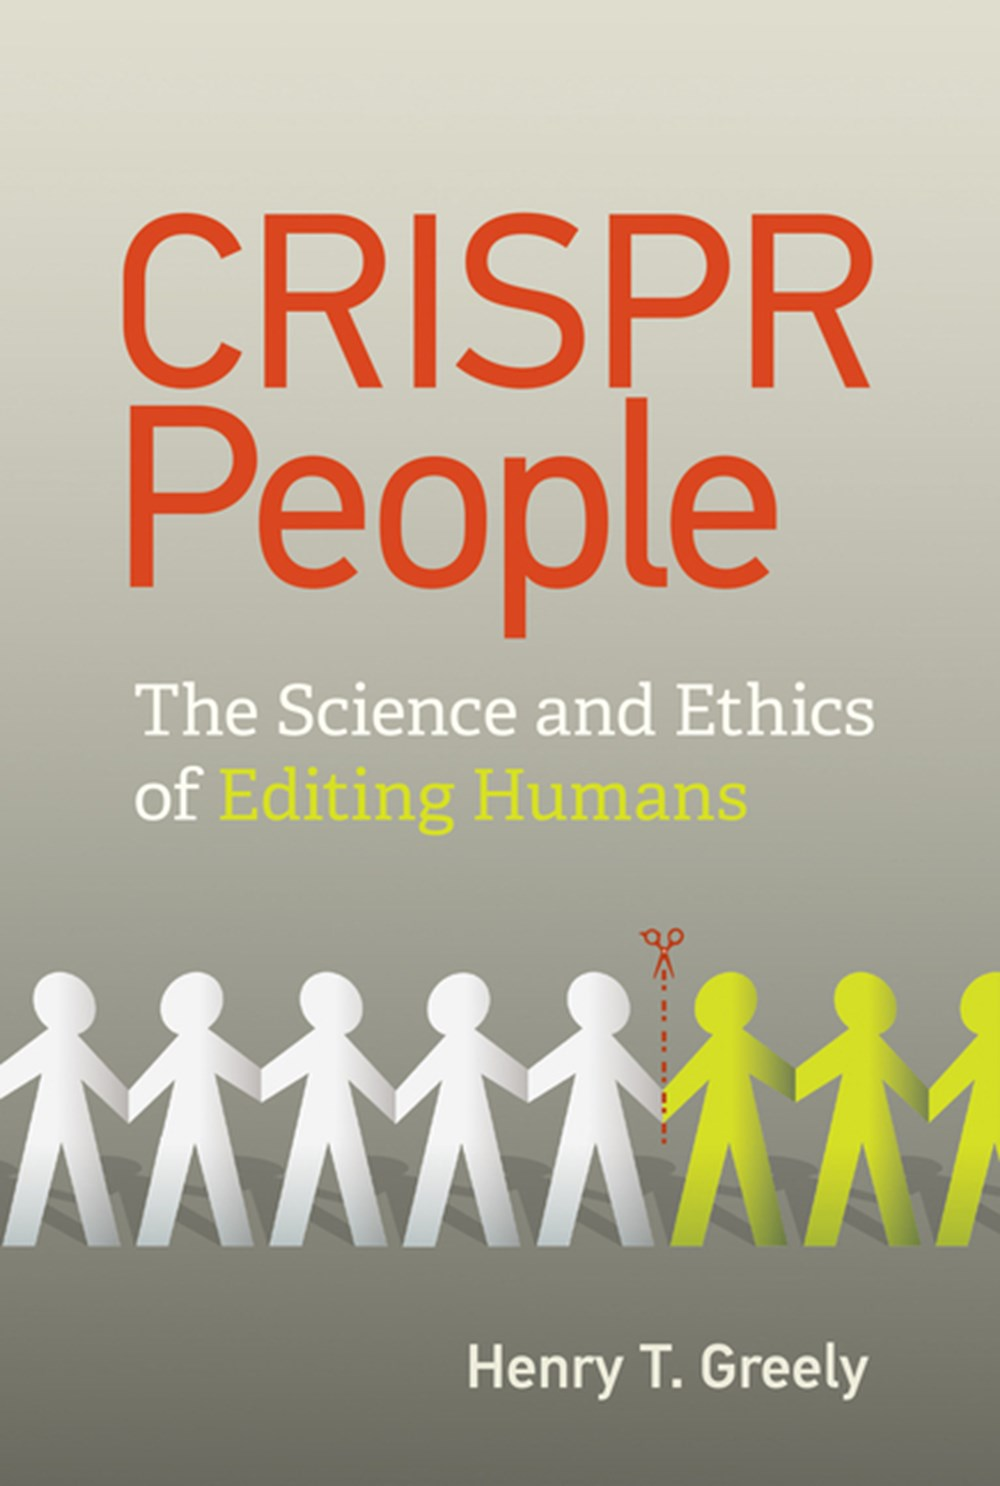 Crispr People The Science and Ethics of Editing Humans